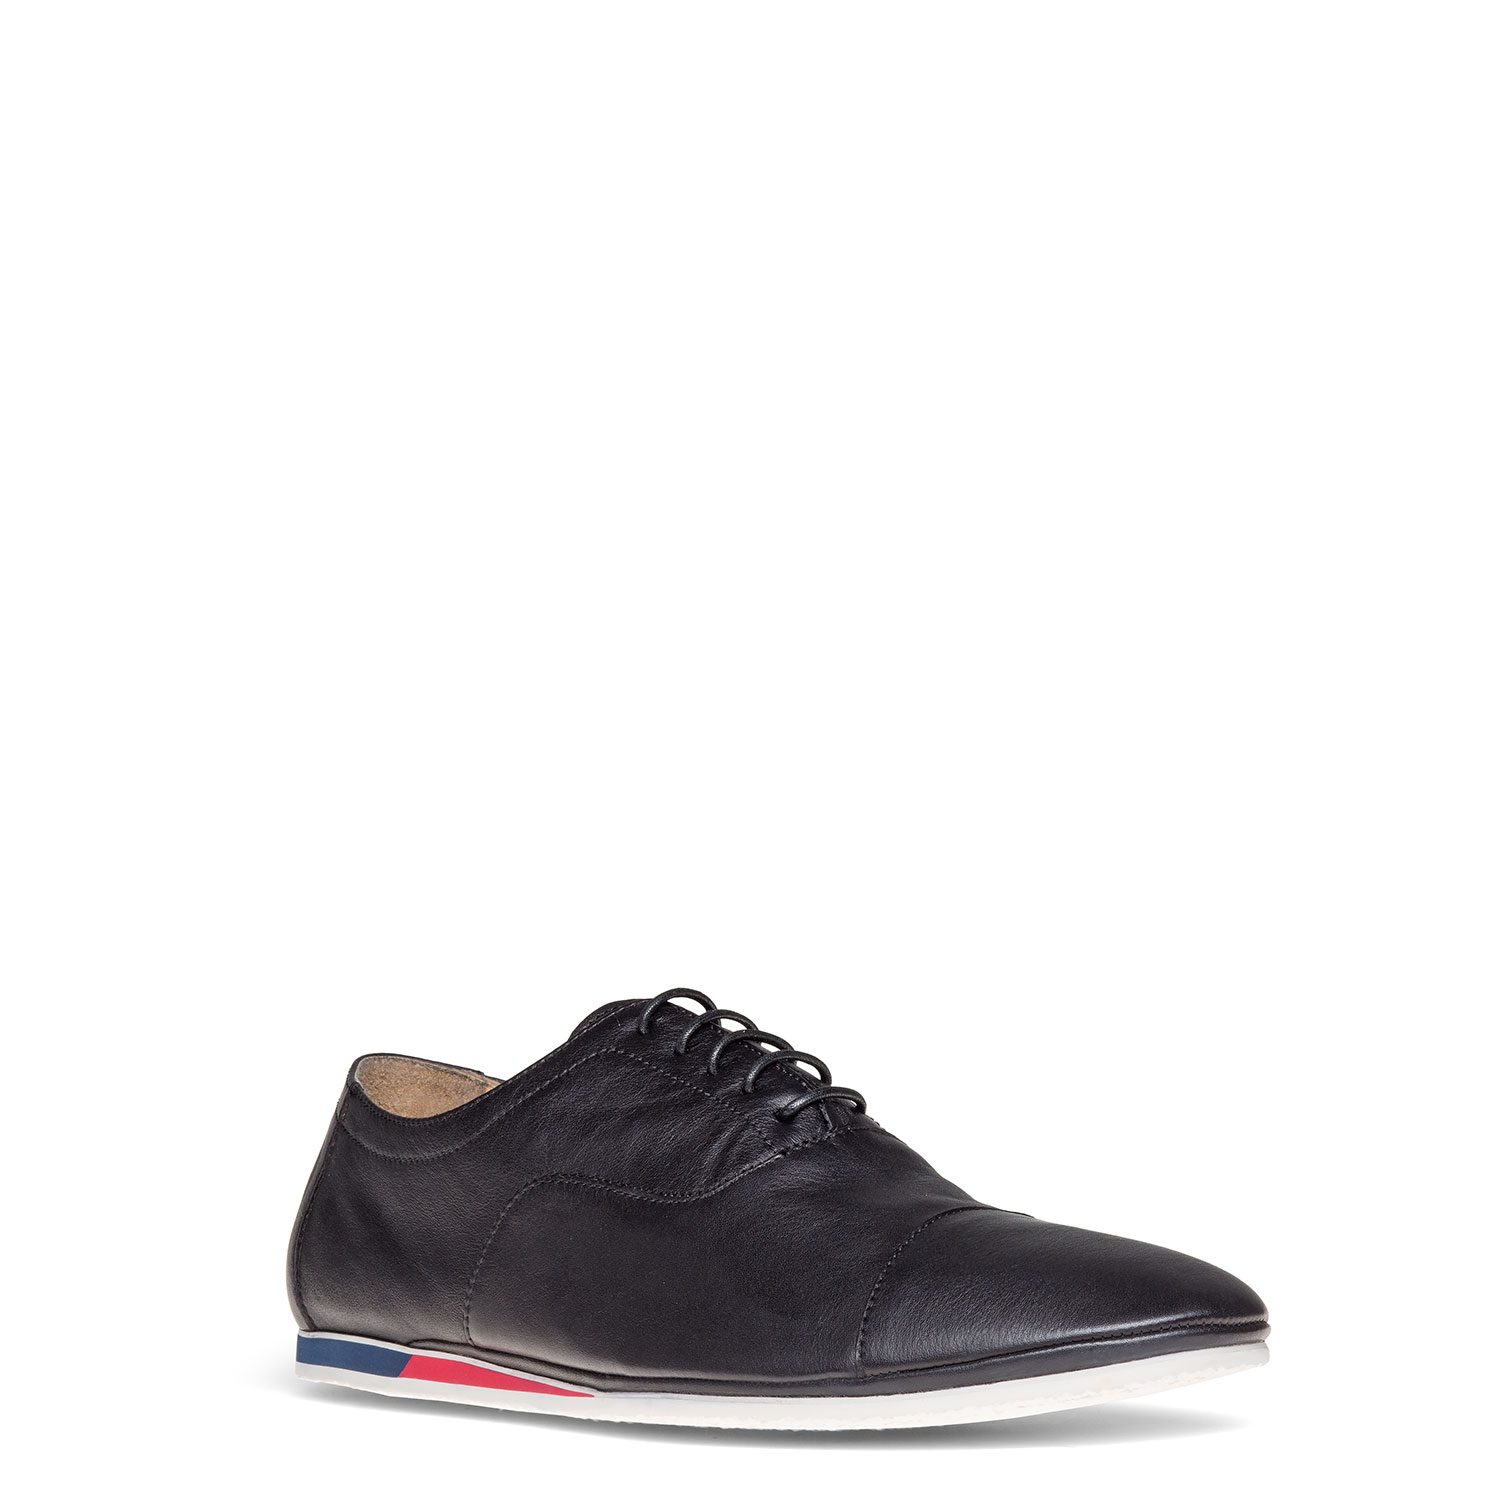 Men's shoes CARLO PAZOLINI HM-JUU1-1